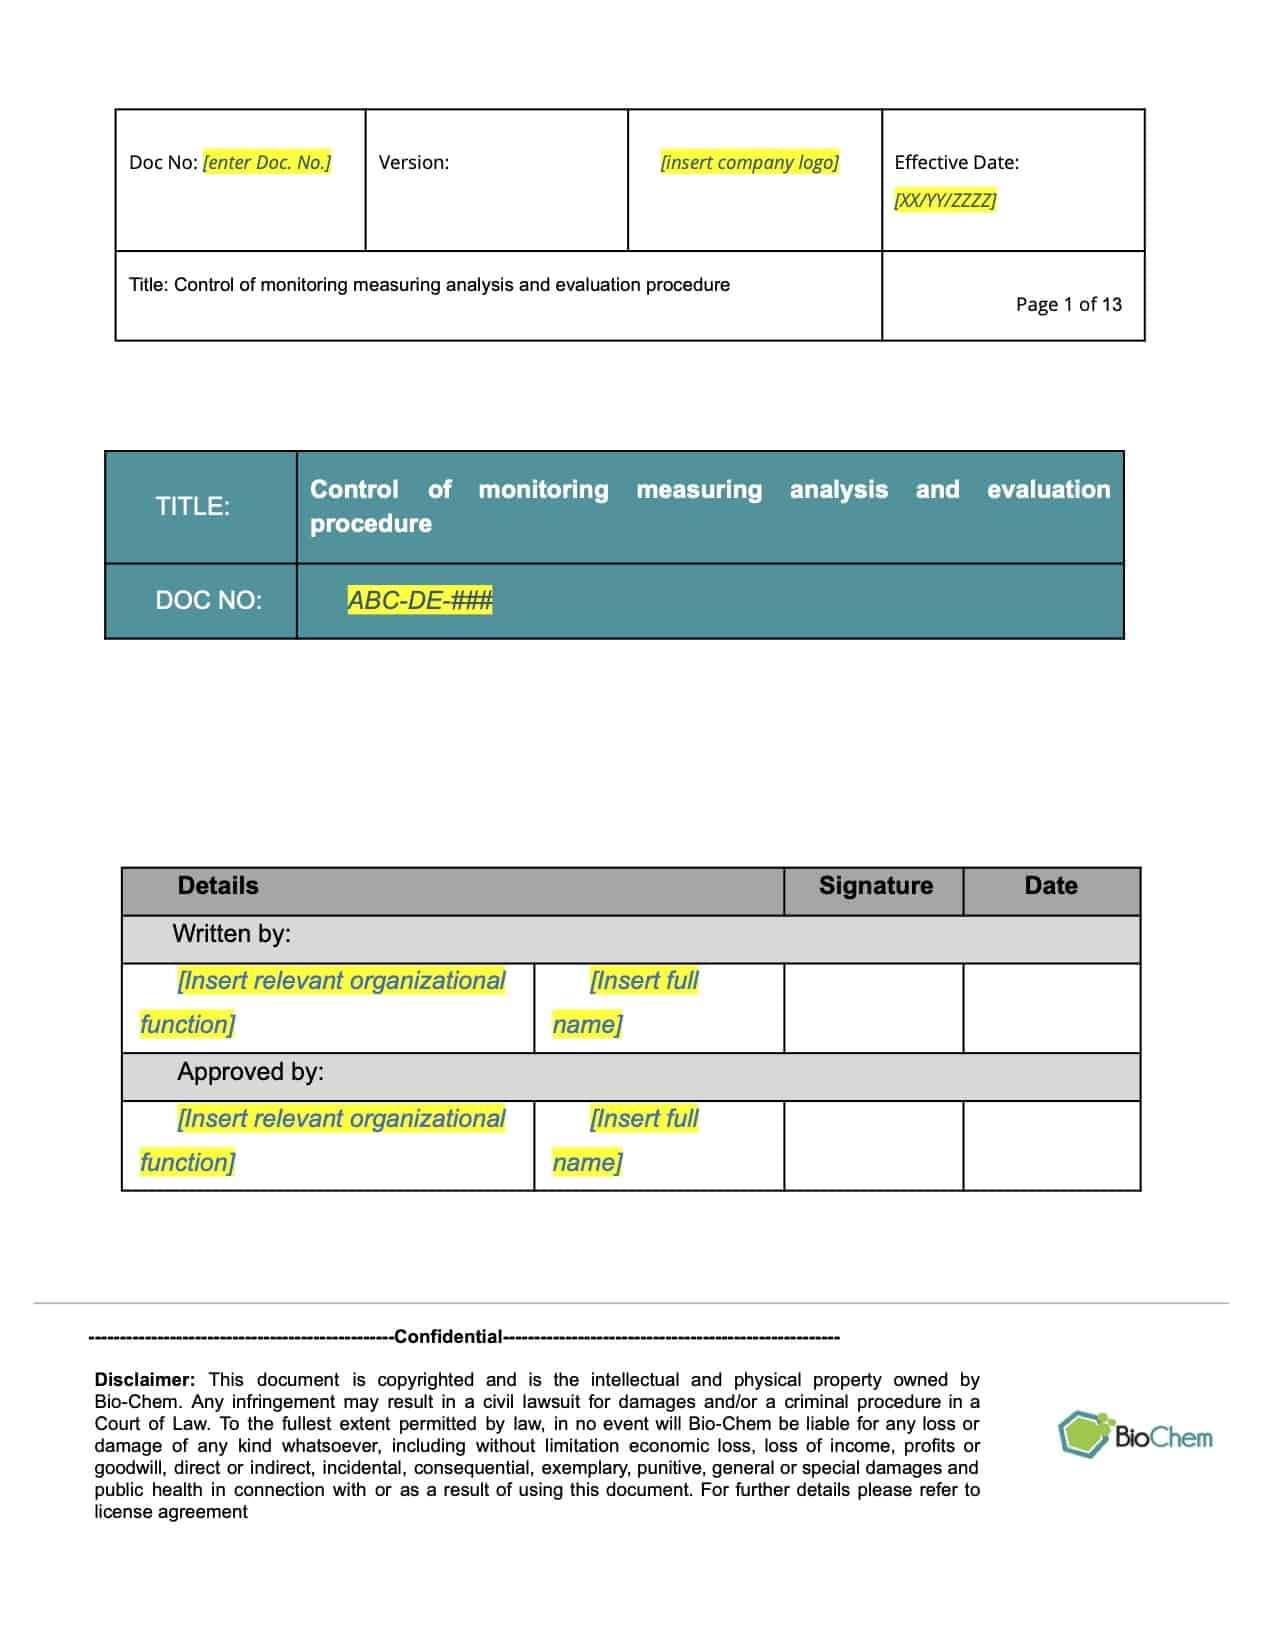 Control of Monitoring Measuring Analysis and Evaluation_BioChem_ISMS_Template preview 1